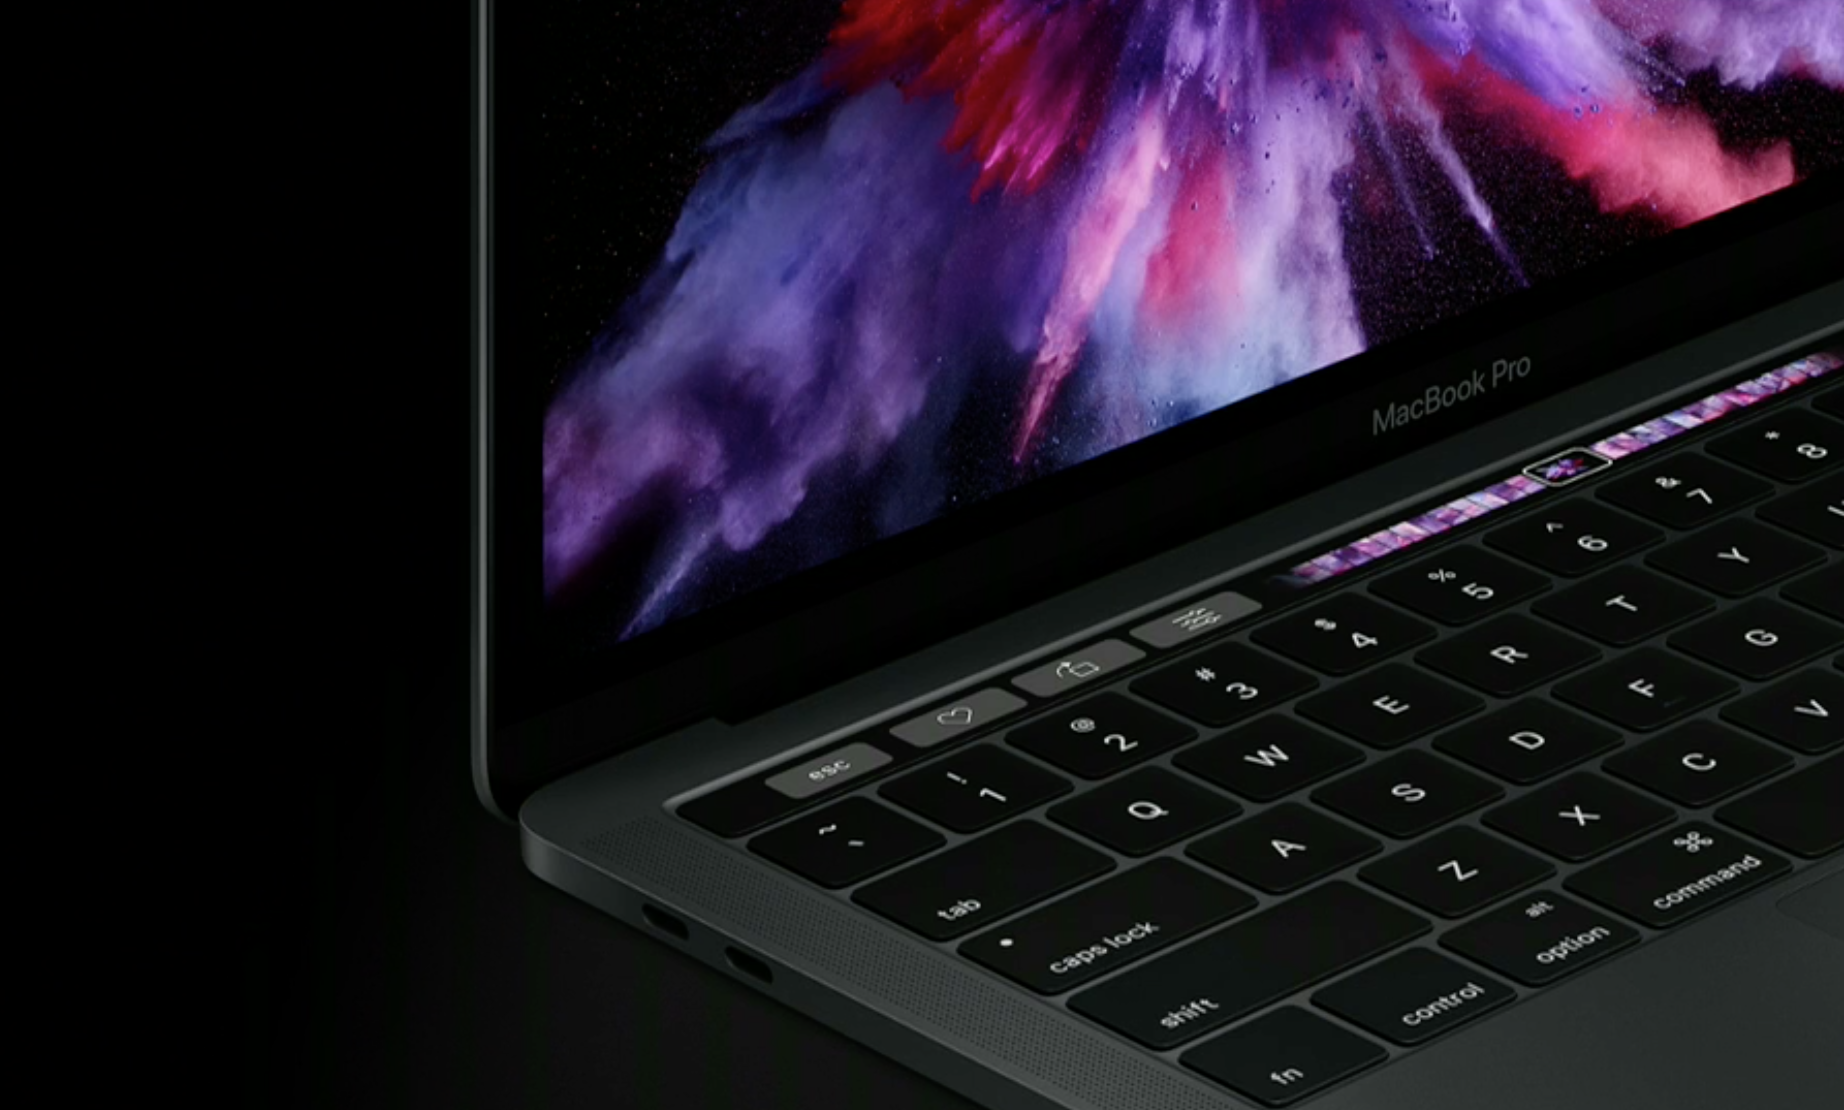 MacbookPro2016 - Apple announces a redesigned MacBook Pro with an all new Touch Bar